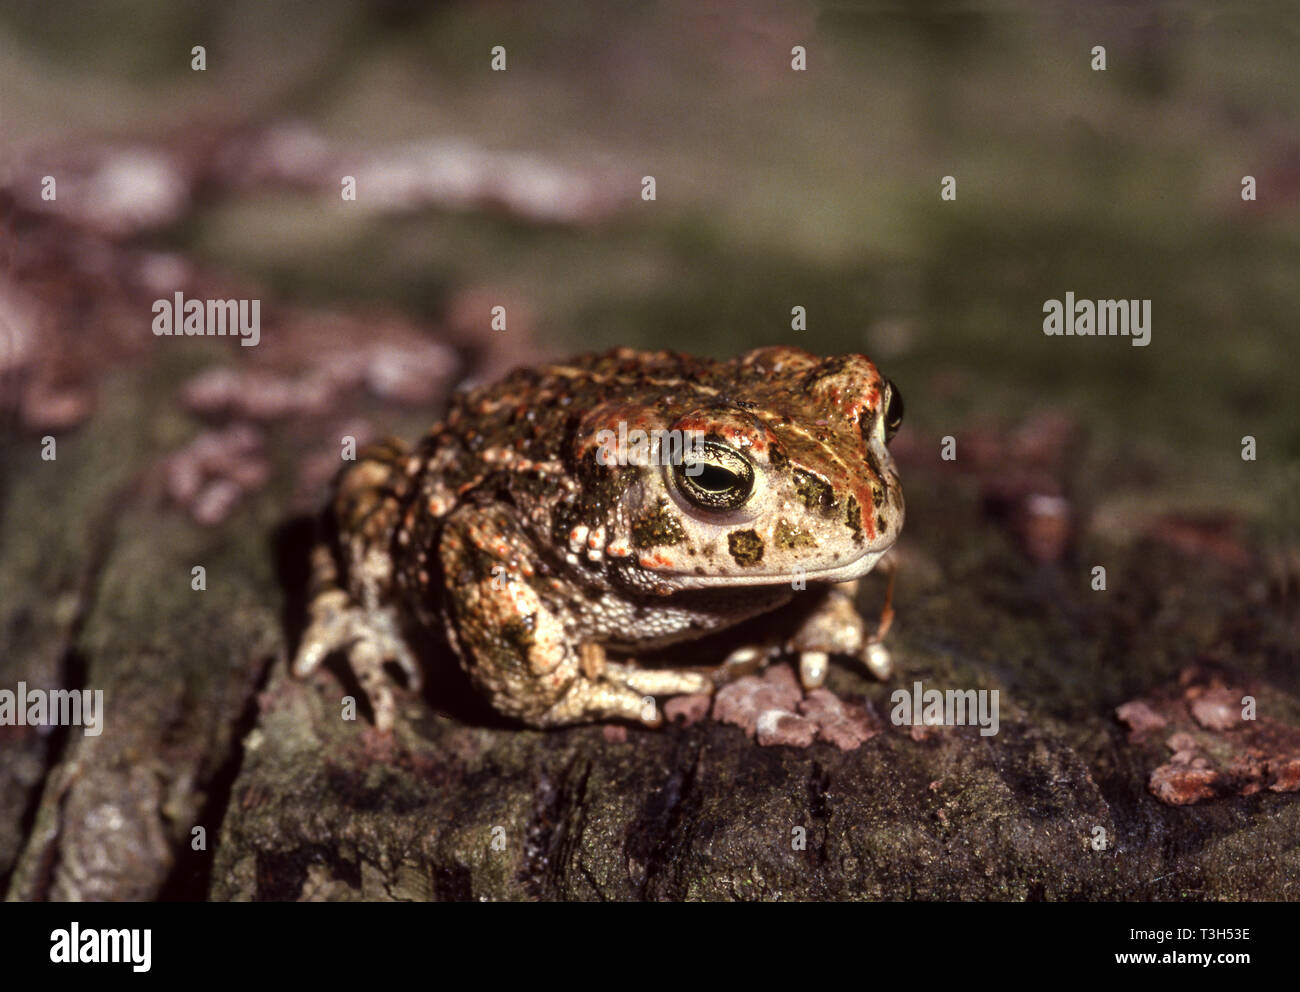 Natterjack Toad (Bufo calamita) Animal sitting on a rock in my garden in Southwest France. - Stock Image